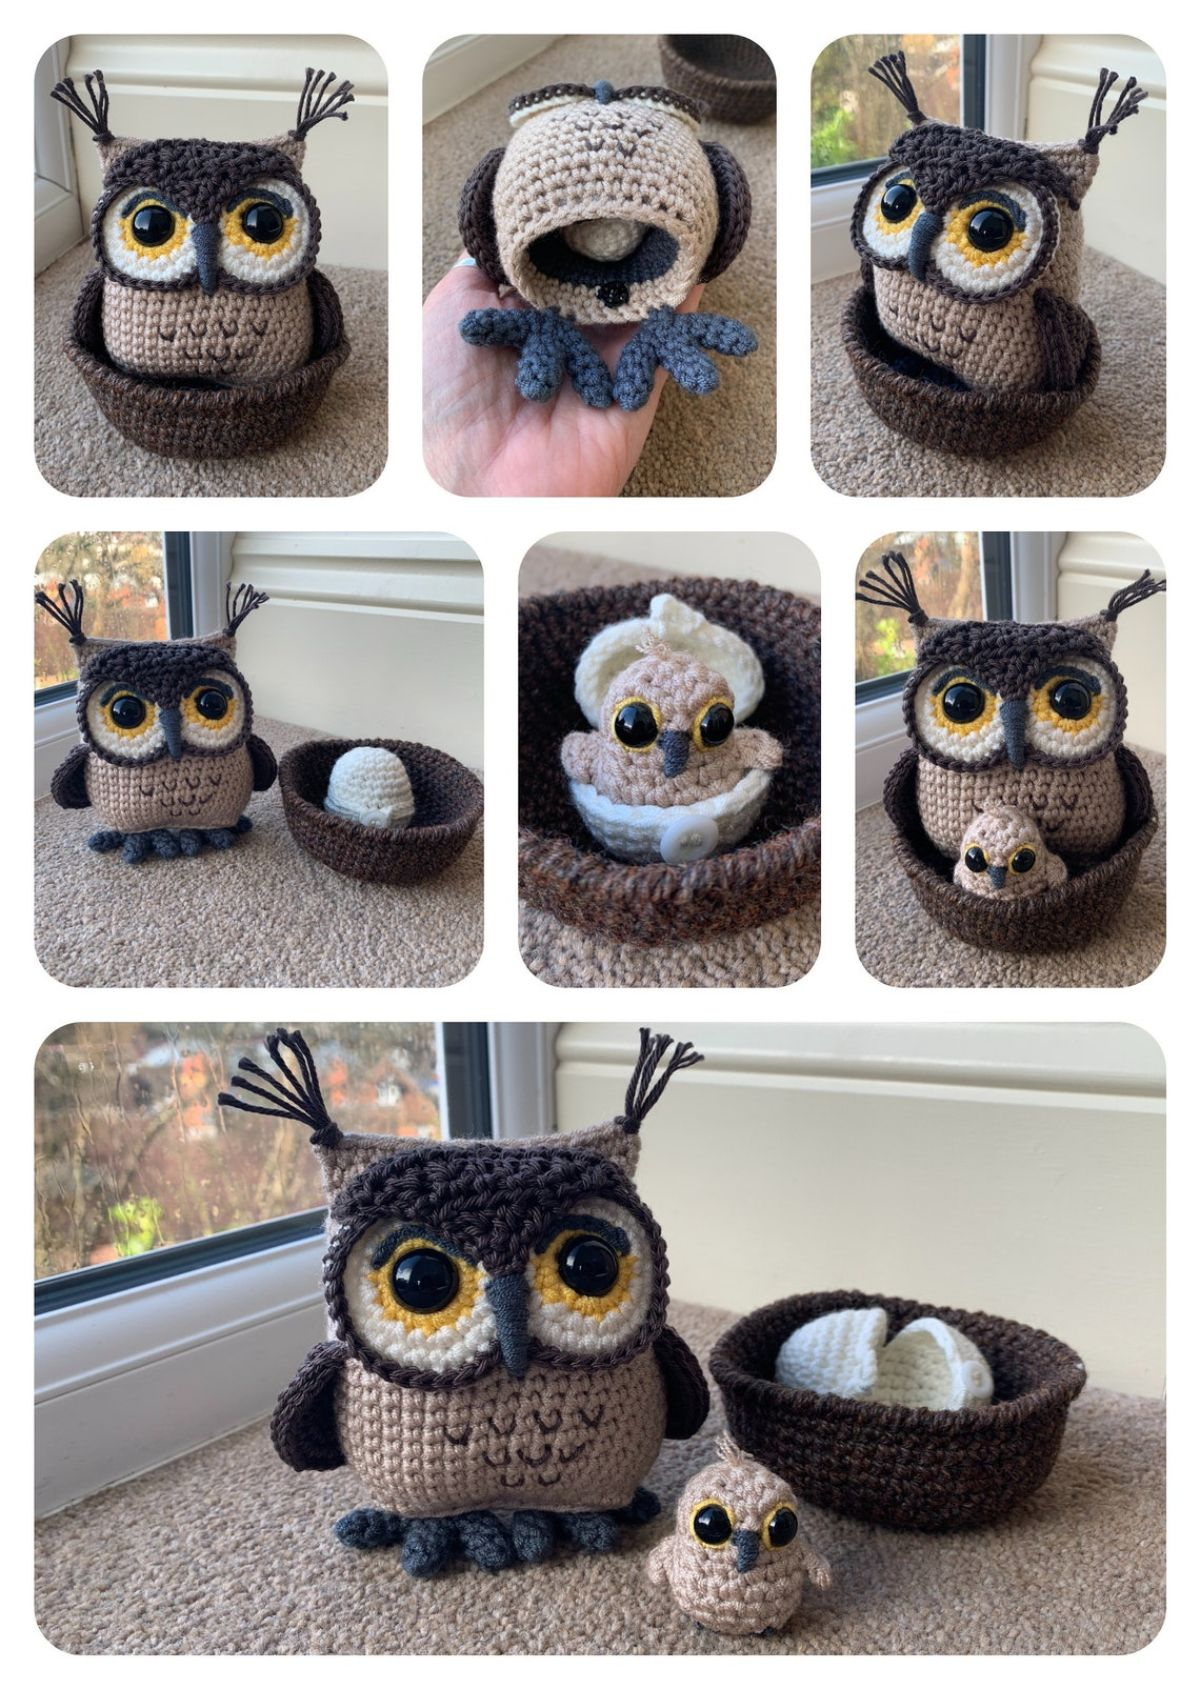 Owl with Hatching Owlet - Crochet Pattern